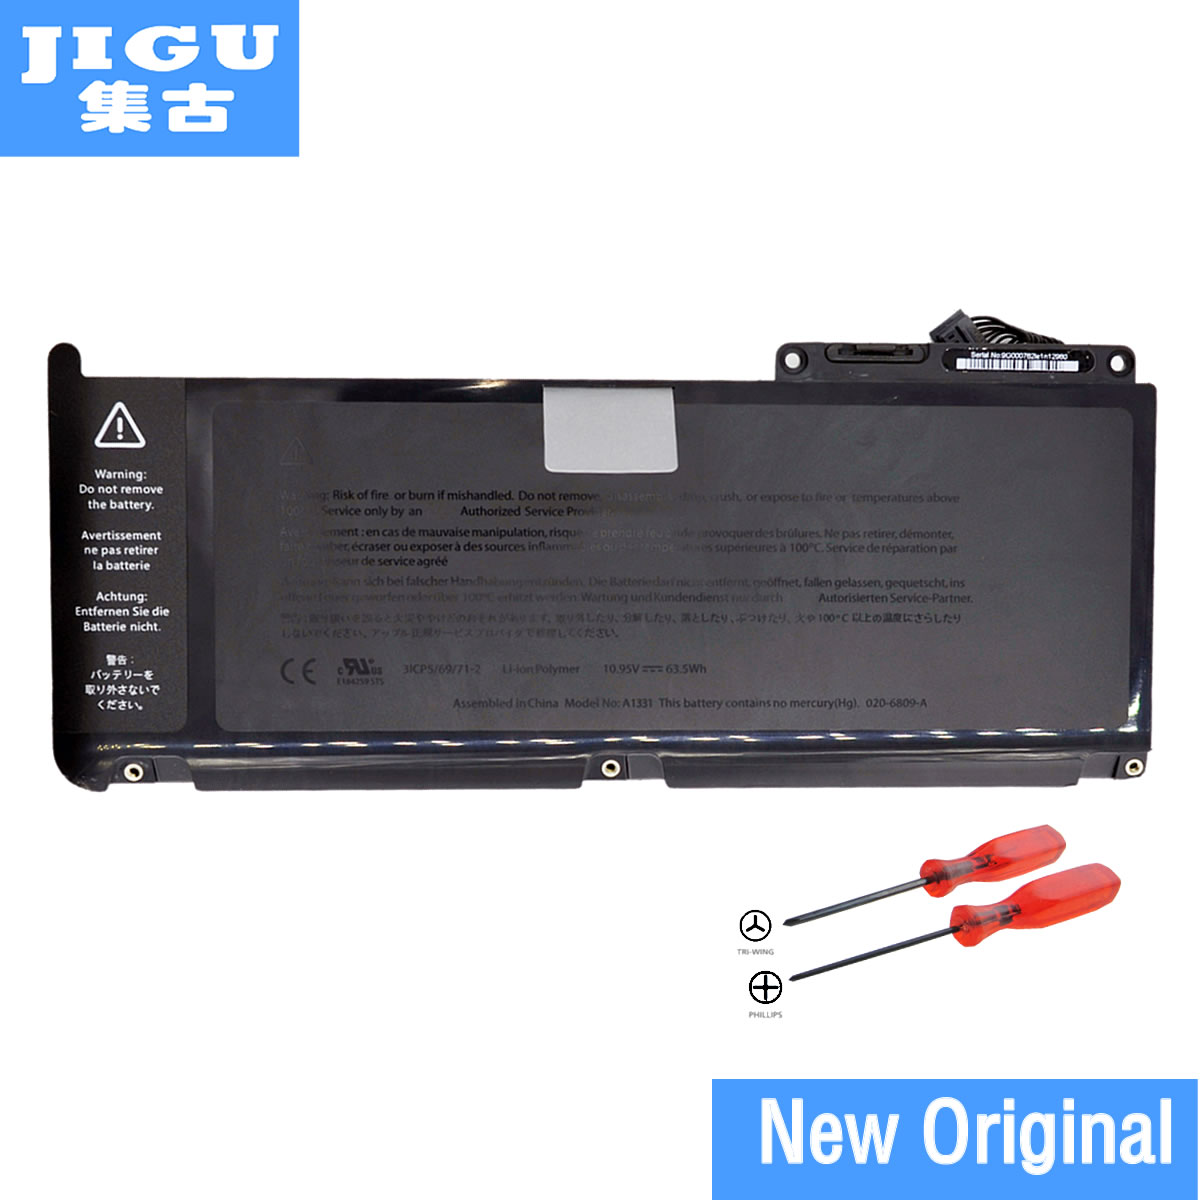 JIGU Free shipping A1331 Original Laptop Battery For Apple MacBook A1342 MC207 MC516 For MacBook 13 Pro 15 17 13.3 free shipping new genuine 12 a1534 laptop a1527 battery for apple macbook air 12 inch a1527 battery a1534 2015 7 55v 40 28wh